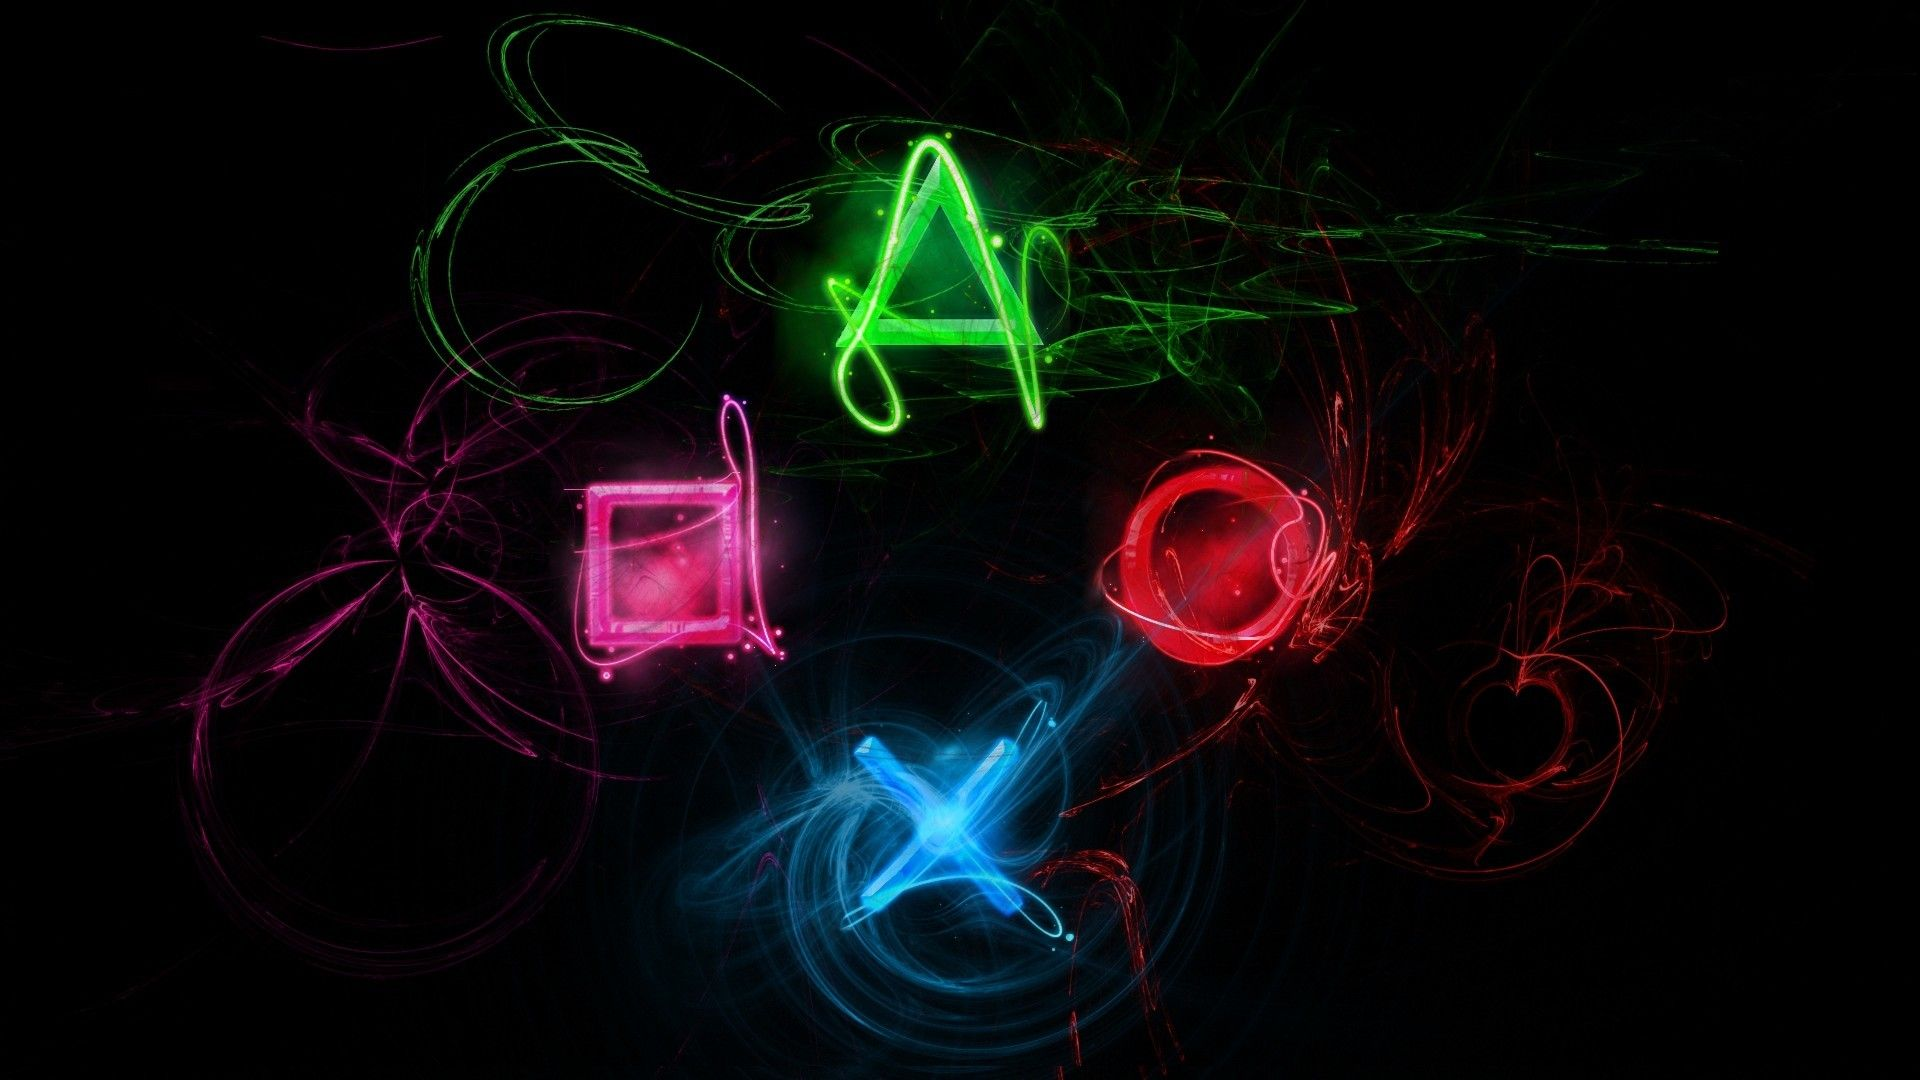 Cool PS4 wallpaper Ideas For Everyone Looking to Make Their Phones Look Cool